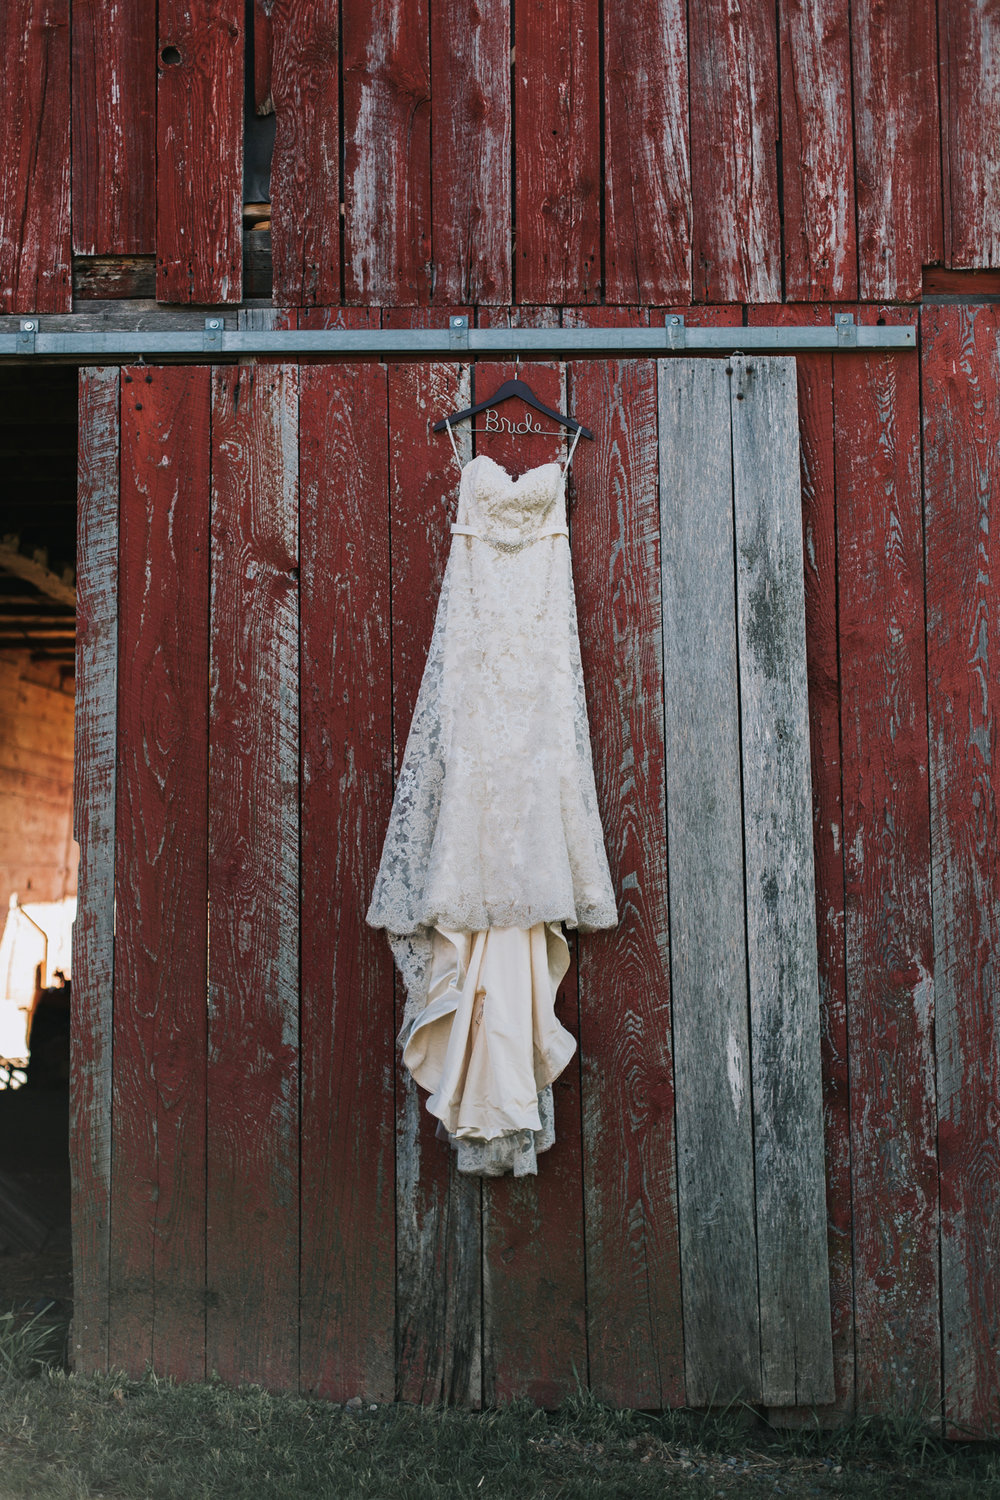 the-farm-at-beeber-drive-muncy-pa-wedding-dress-barn